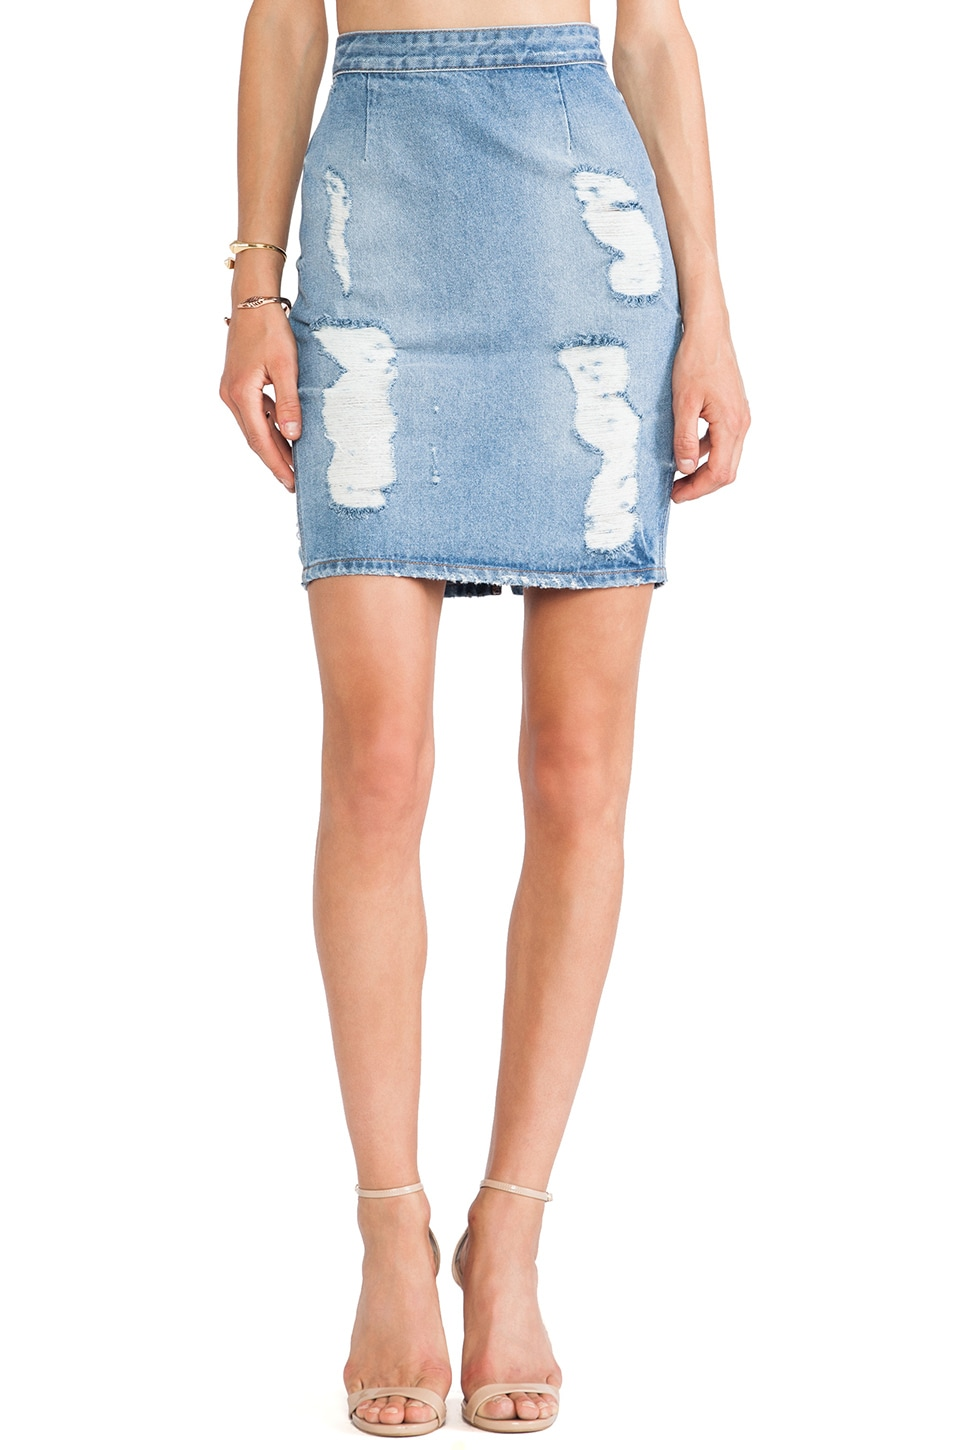 official store amazing quality exclusive deals Lovers + Friends Miles Denim Skirt in Westerly from Revolve.com